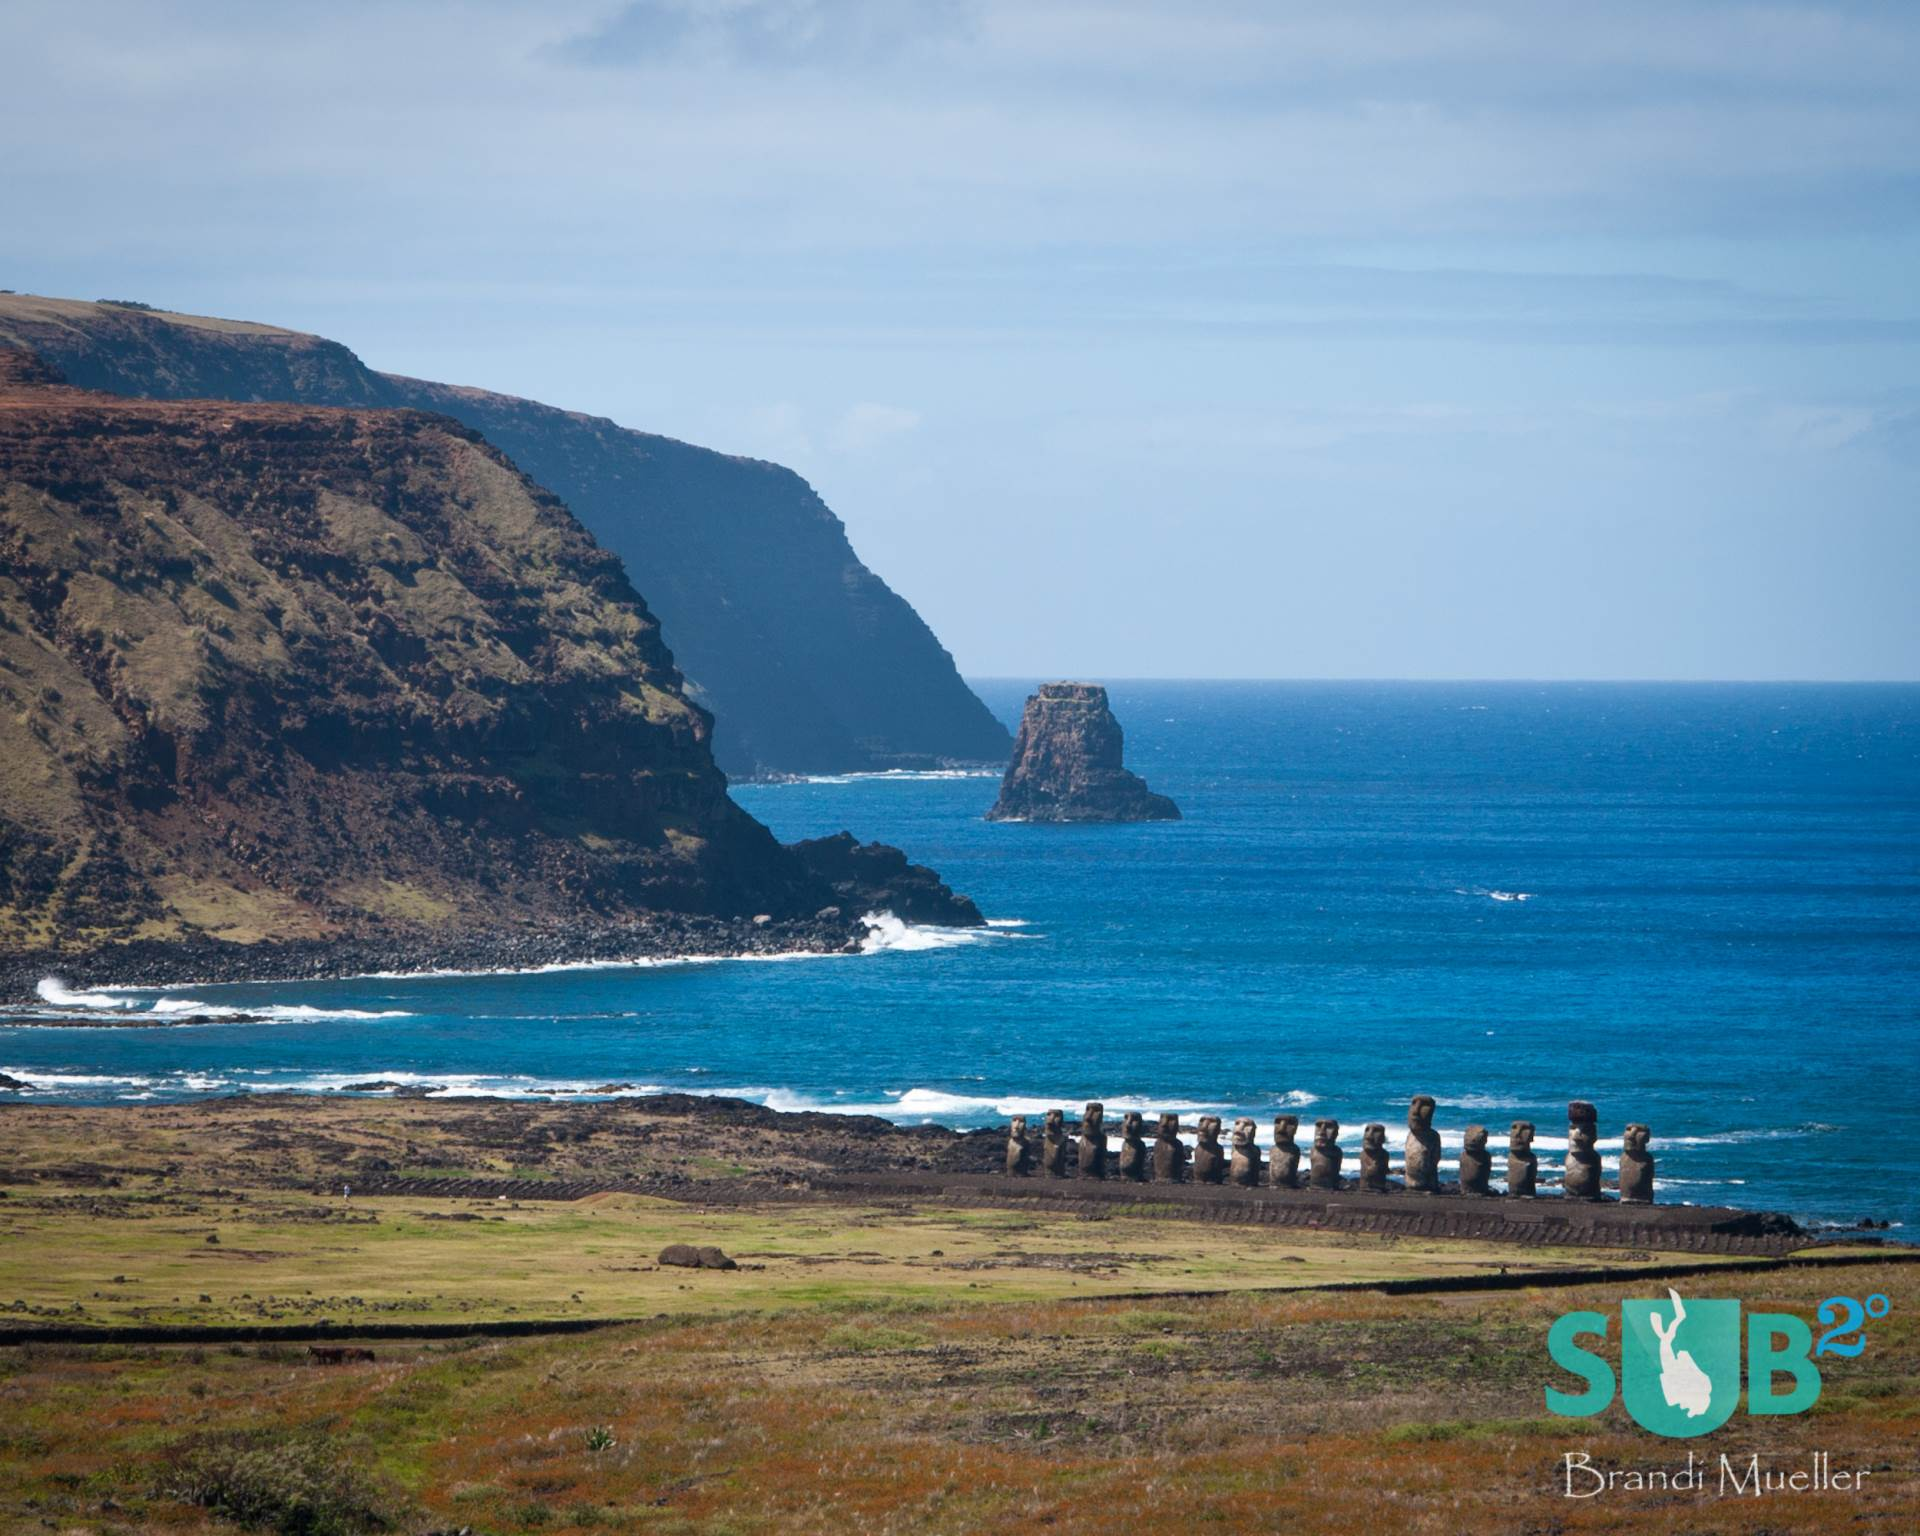 The fifteen moai of Ahu Tongoriki have been restored on the coastline of Easter Island.